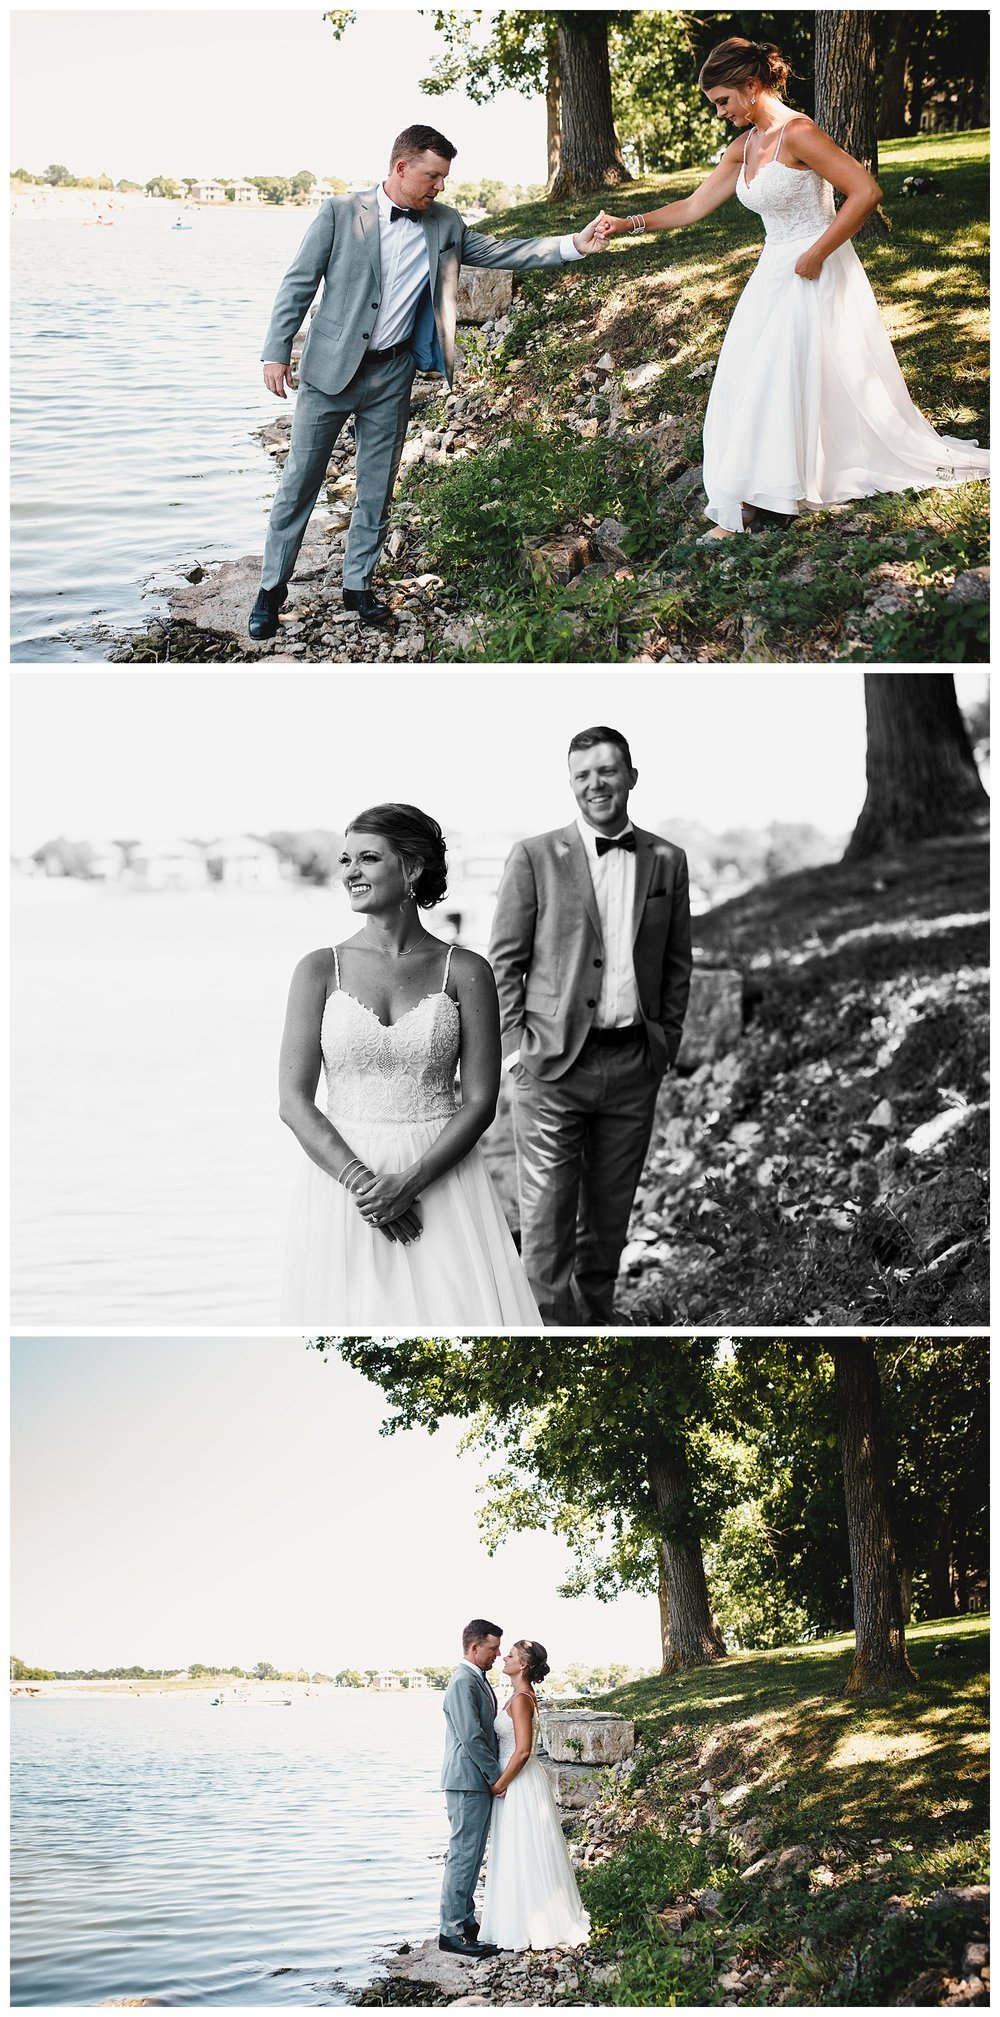 Kelsey_Diane_Photography_Kansas_City_Engagement_Wedding_Photographer_Midwest_Traveling_Missouri_Lee_Andrew_Hall_And_Garden_Blue_Springs_Wedding_Clayton_Kimberly_Summer_Wedding_0822.jpg